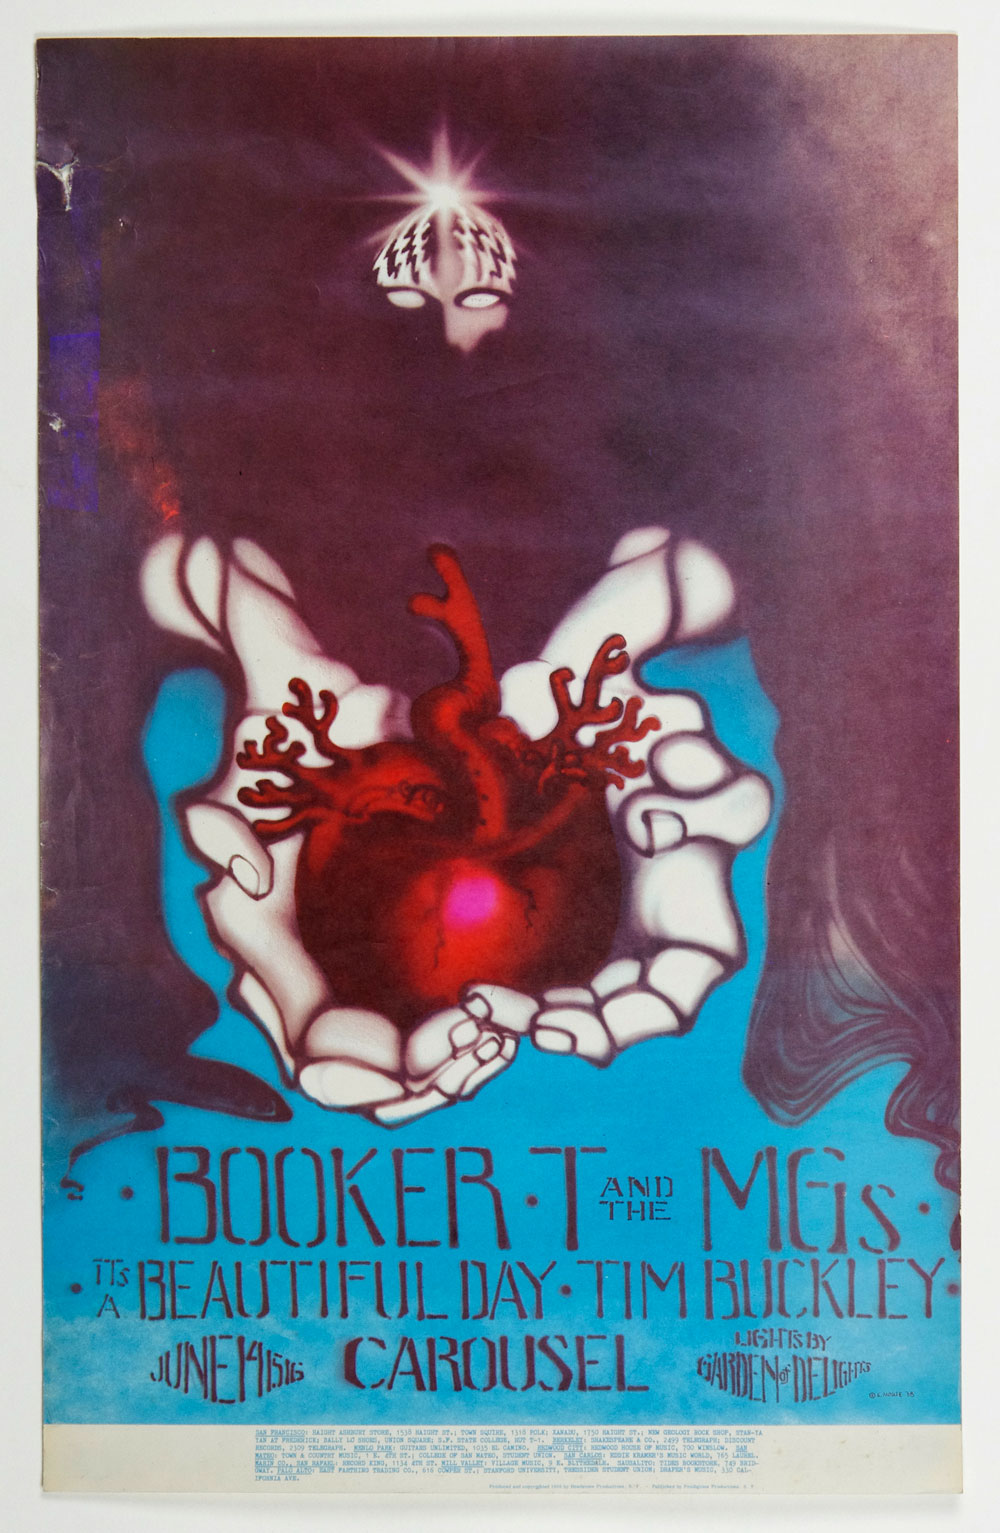 Booker T and the MG's It's Beautiful Day Poster Carousel Ballroom 1968 Jun 14